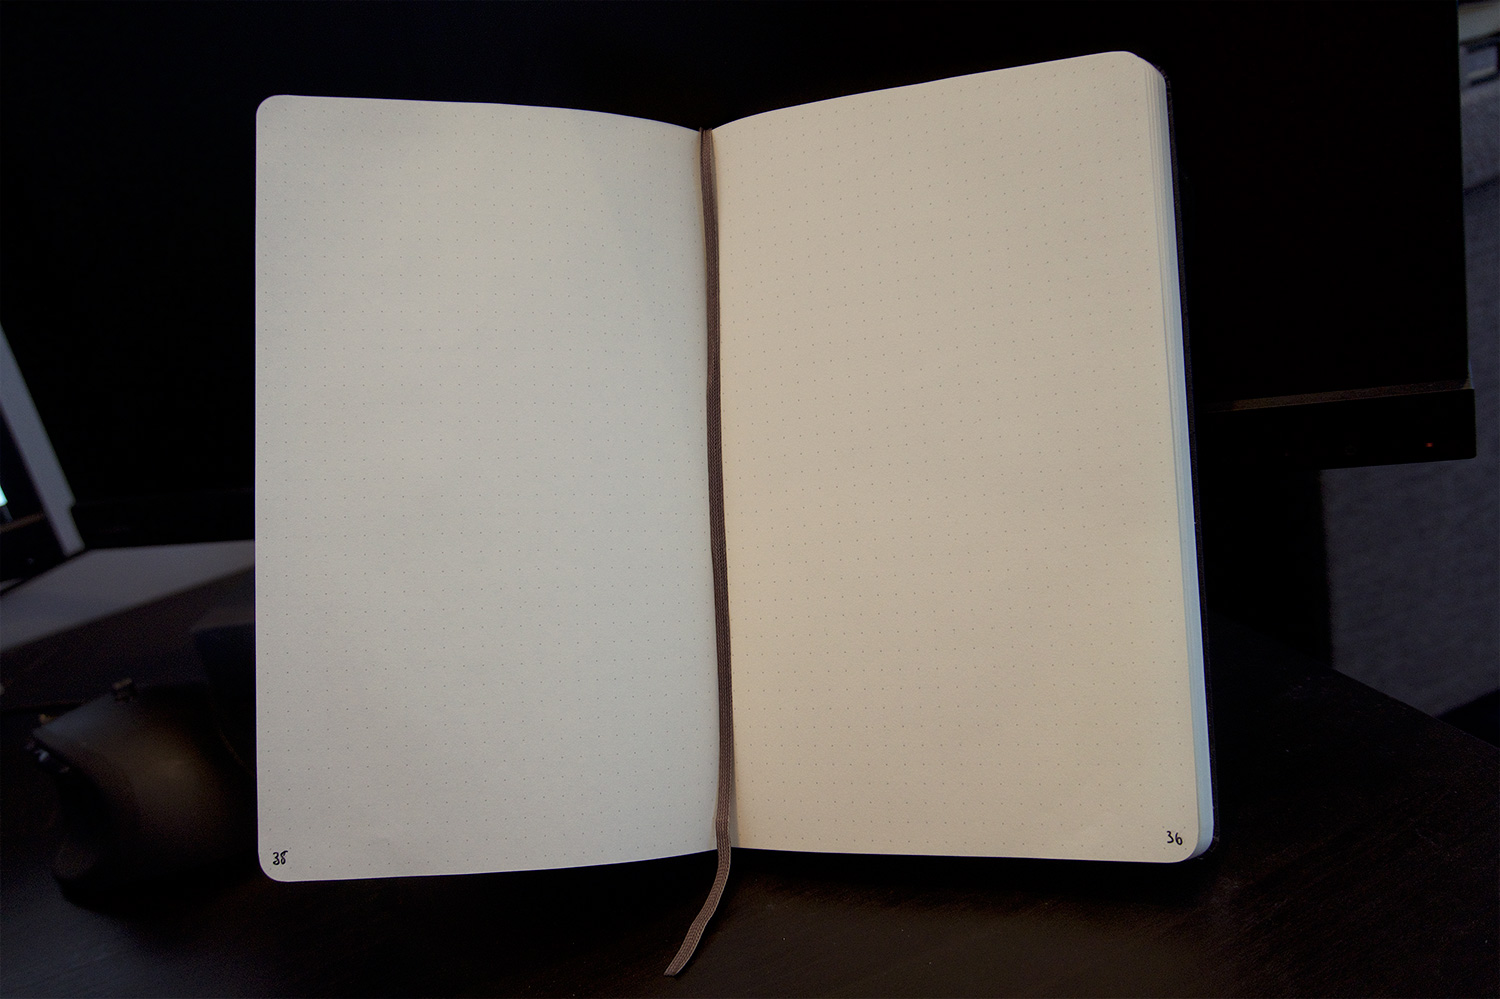 Dotted inside of the moleskin notebook